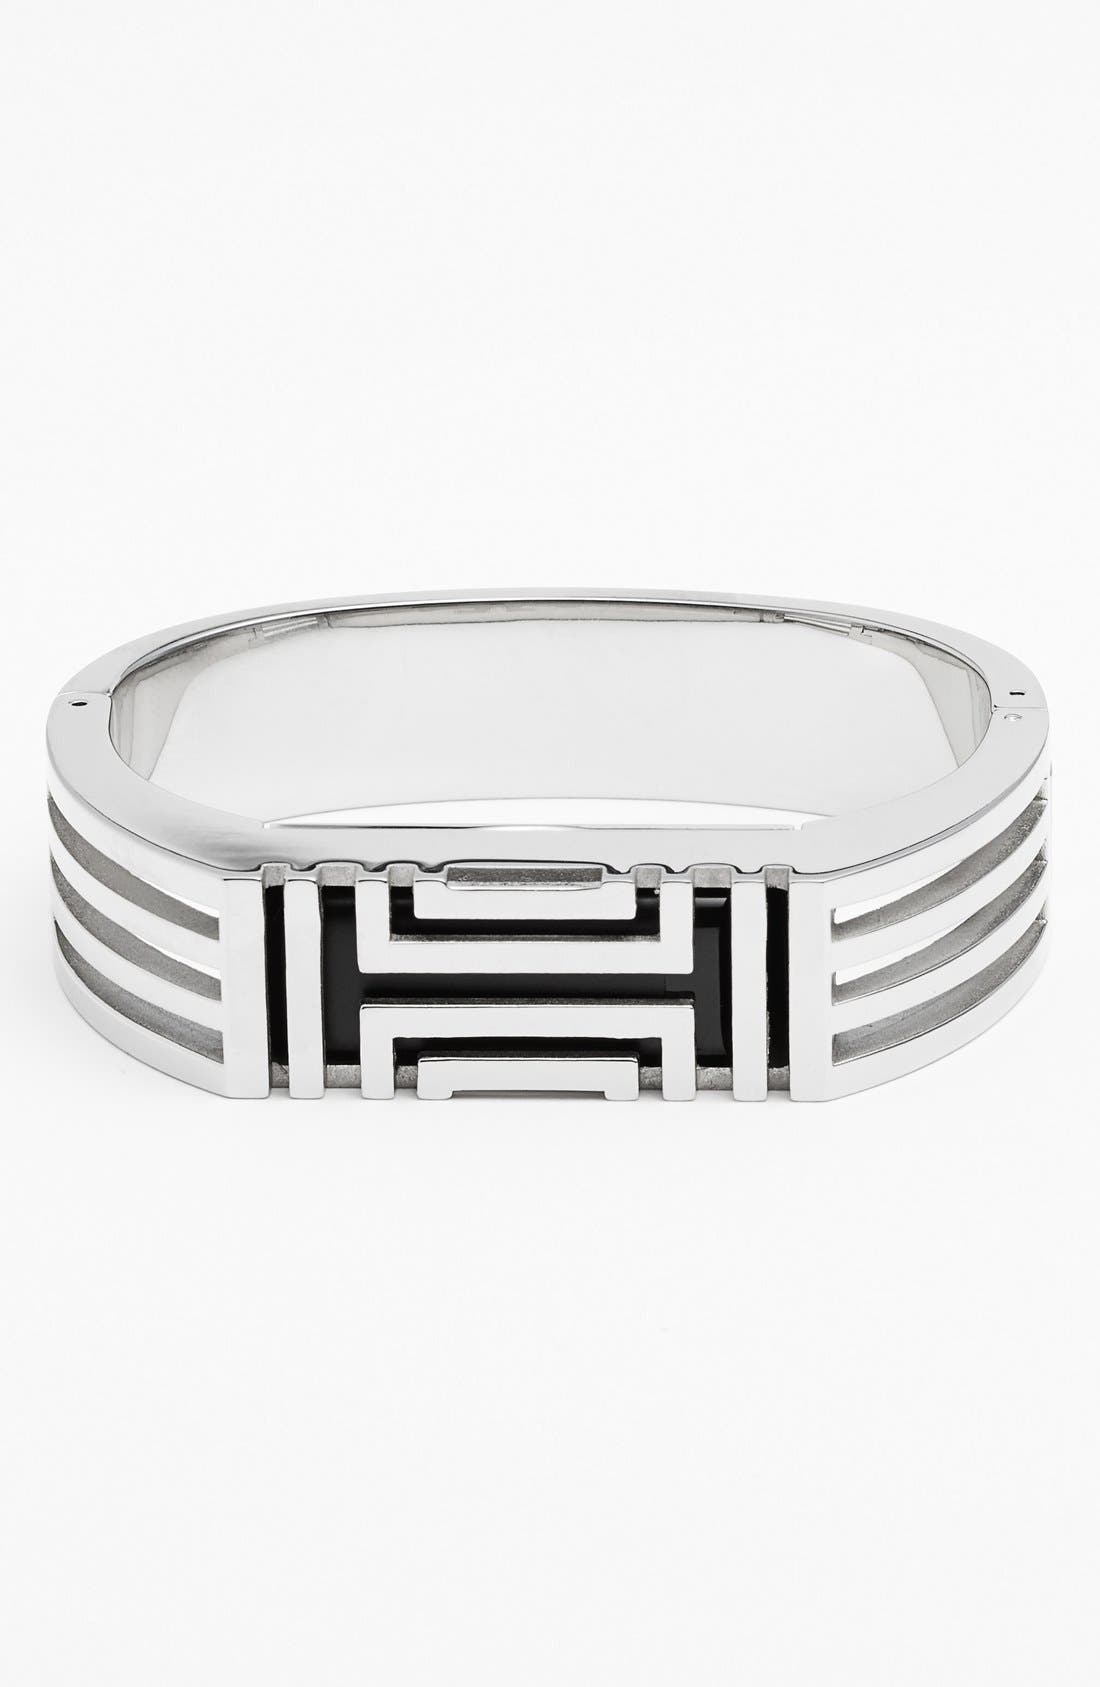 TORY BURCH, for Fitbit<sup>®</sup> Hinged Bracelet, Main thumbnail 1, color, 040